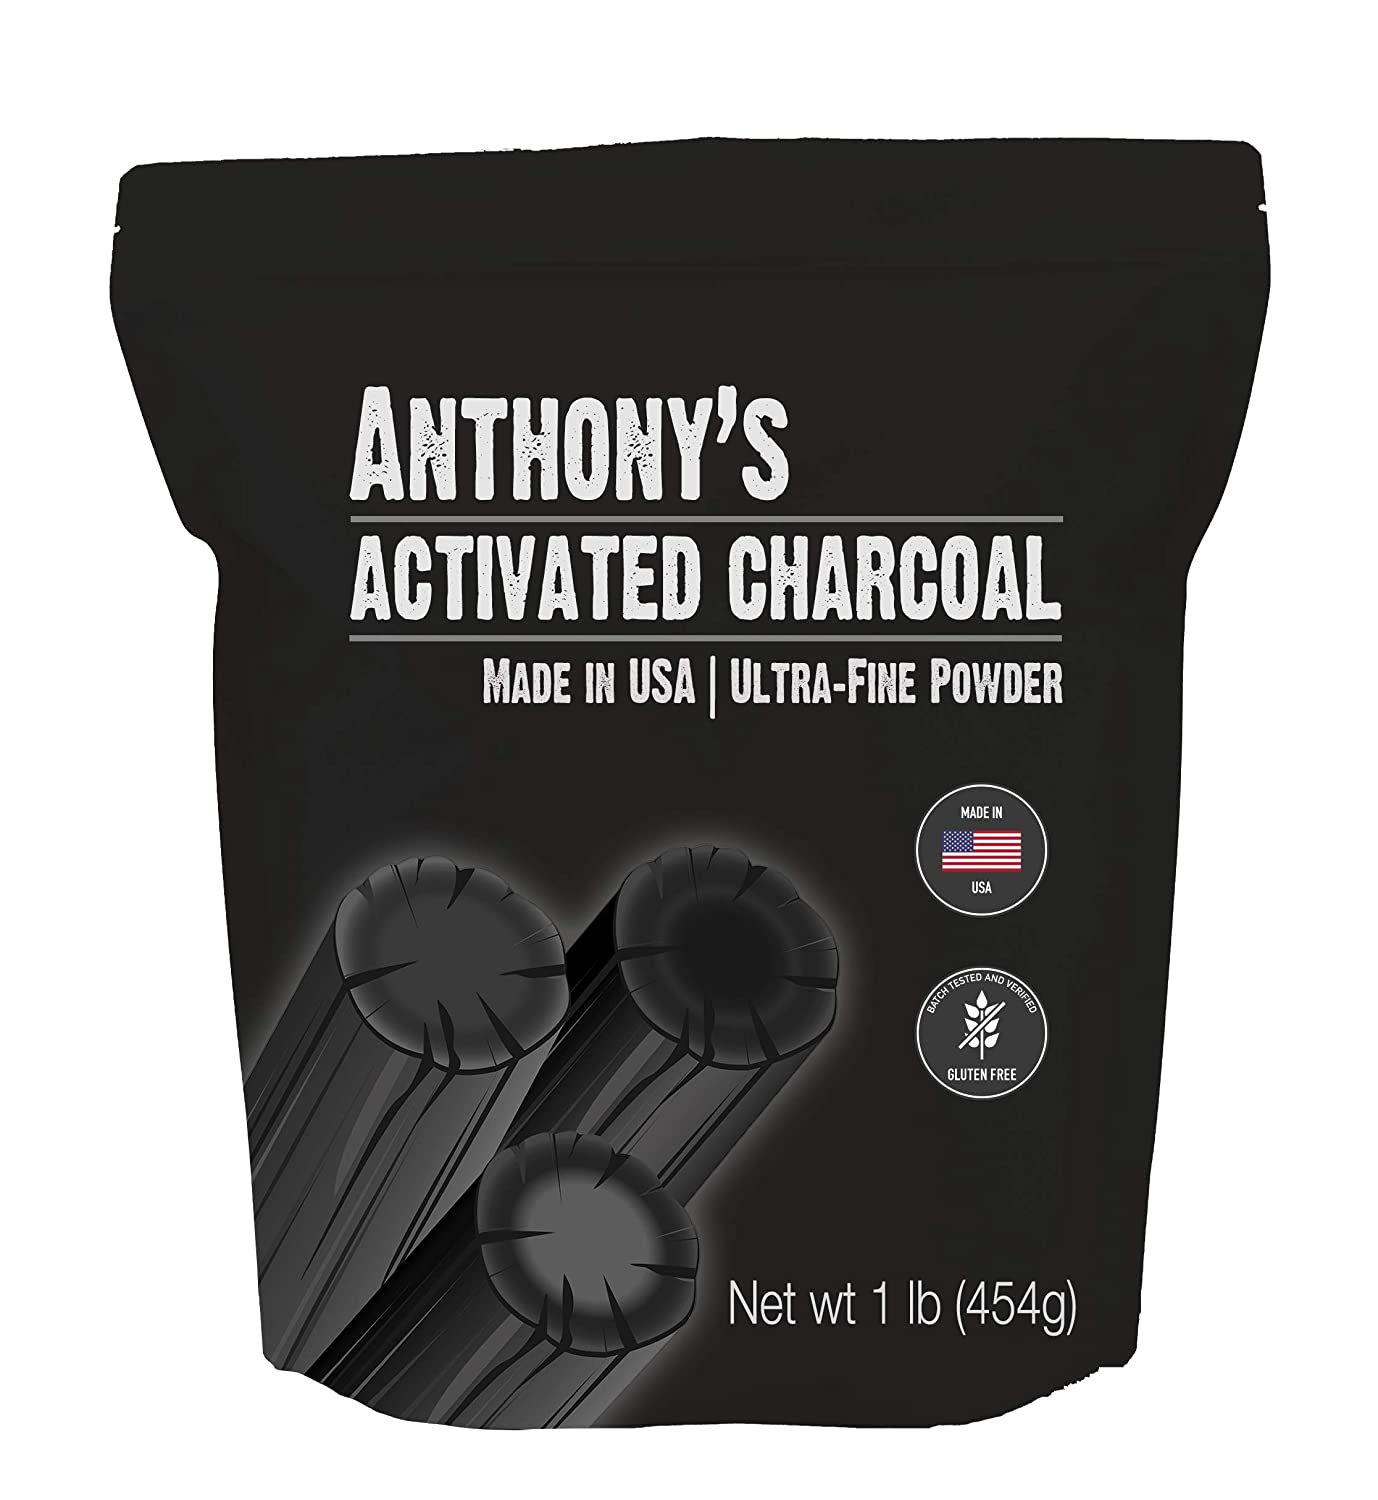 Anthony's Activated Charcoal